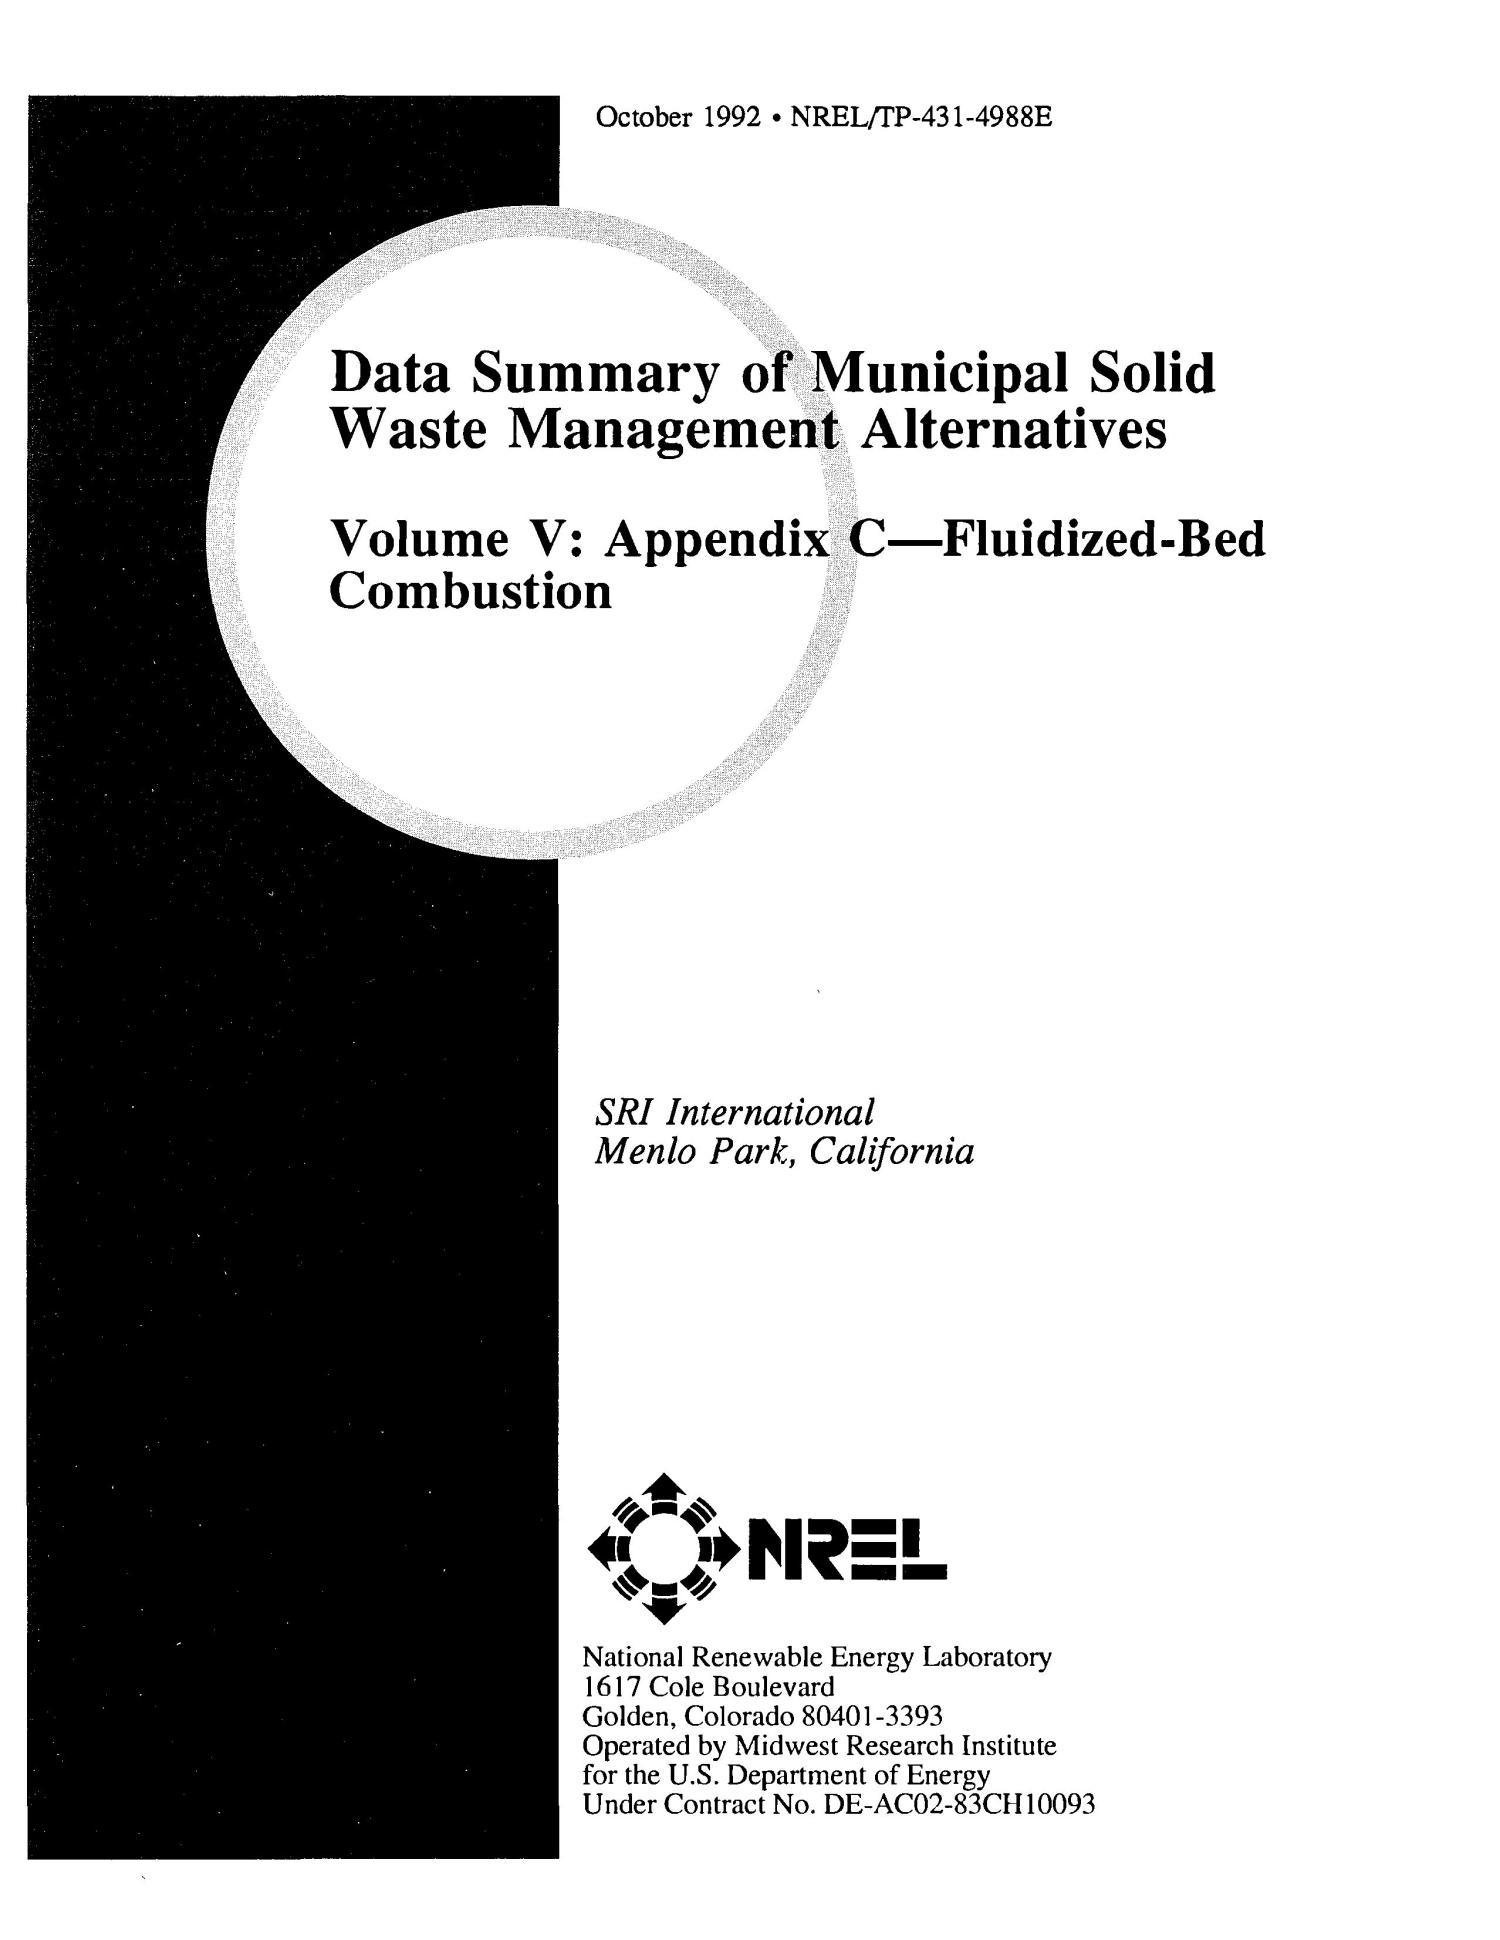 Data Summary of Municipal Solid Waste Management Alternatives, Volume 5: Appendix C--Fluidized-Bed Combustion                                                                                                      [Sequence #]: 1 of 60